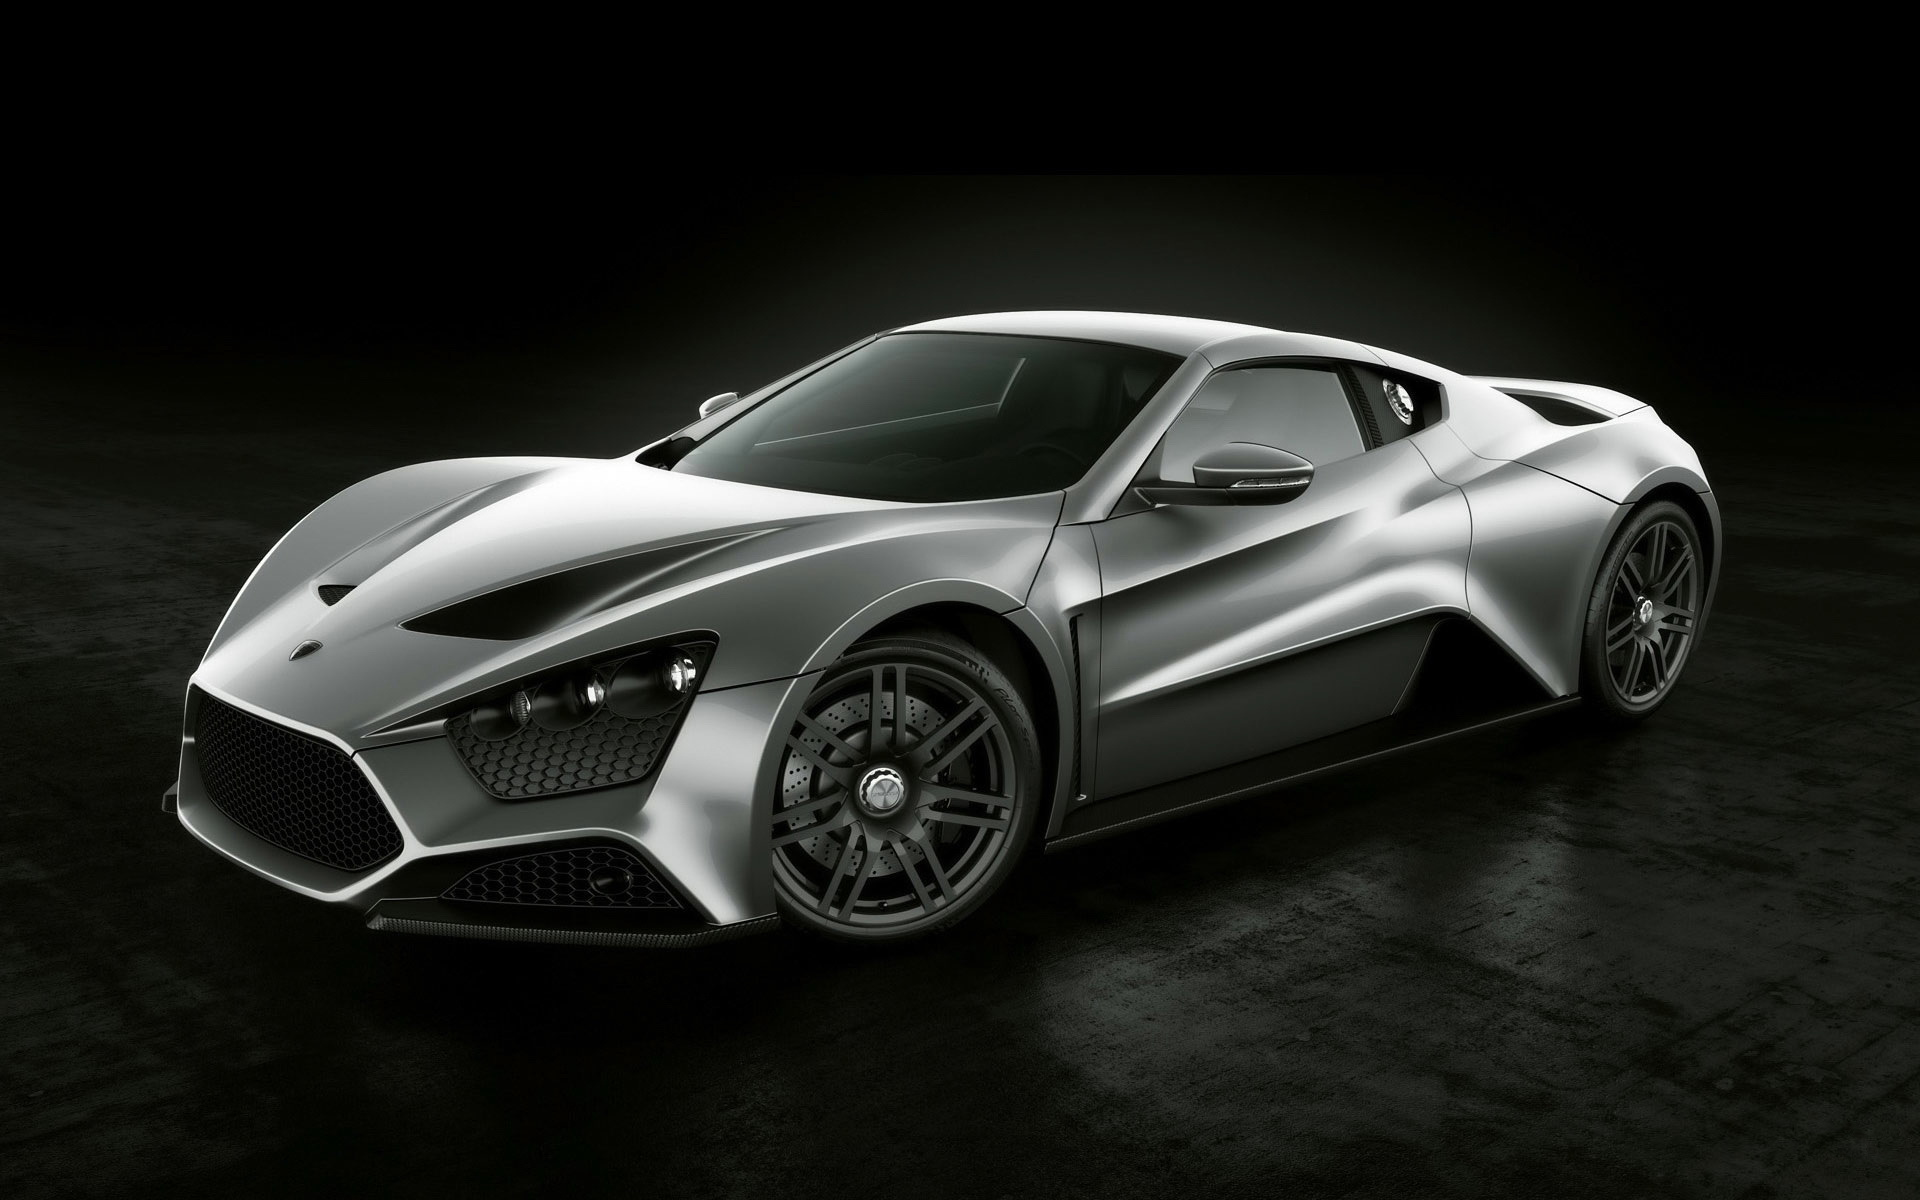 Fahrzeuge - Zenvo ST1  Zenvo Supercar Silver Car Car Vehicle Wallpaper